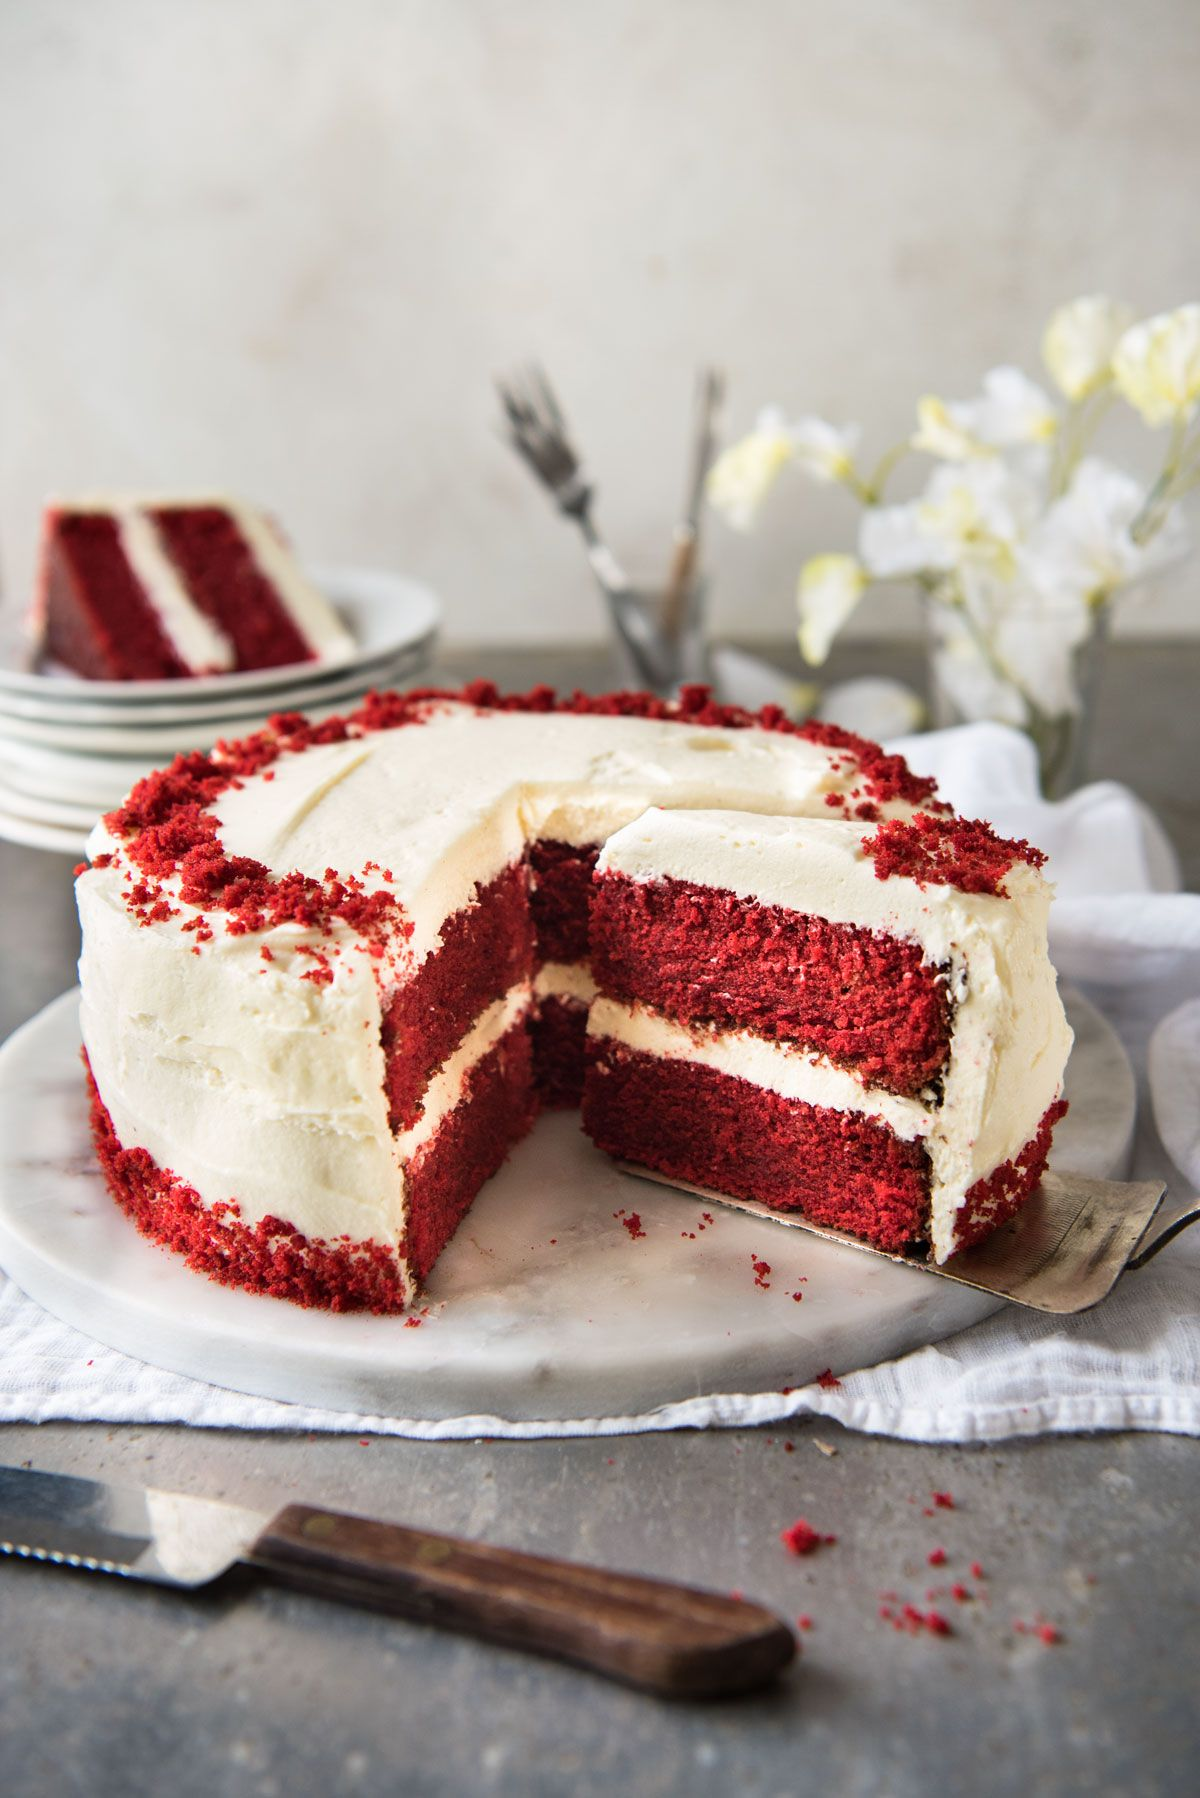 Red Velvet Cake Recipe Cake Recipes Food Cake With Cream Cheese